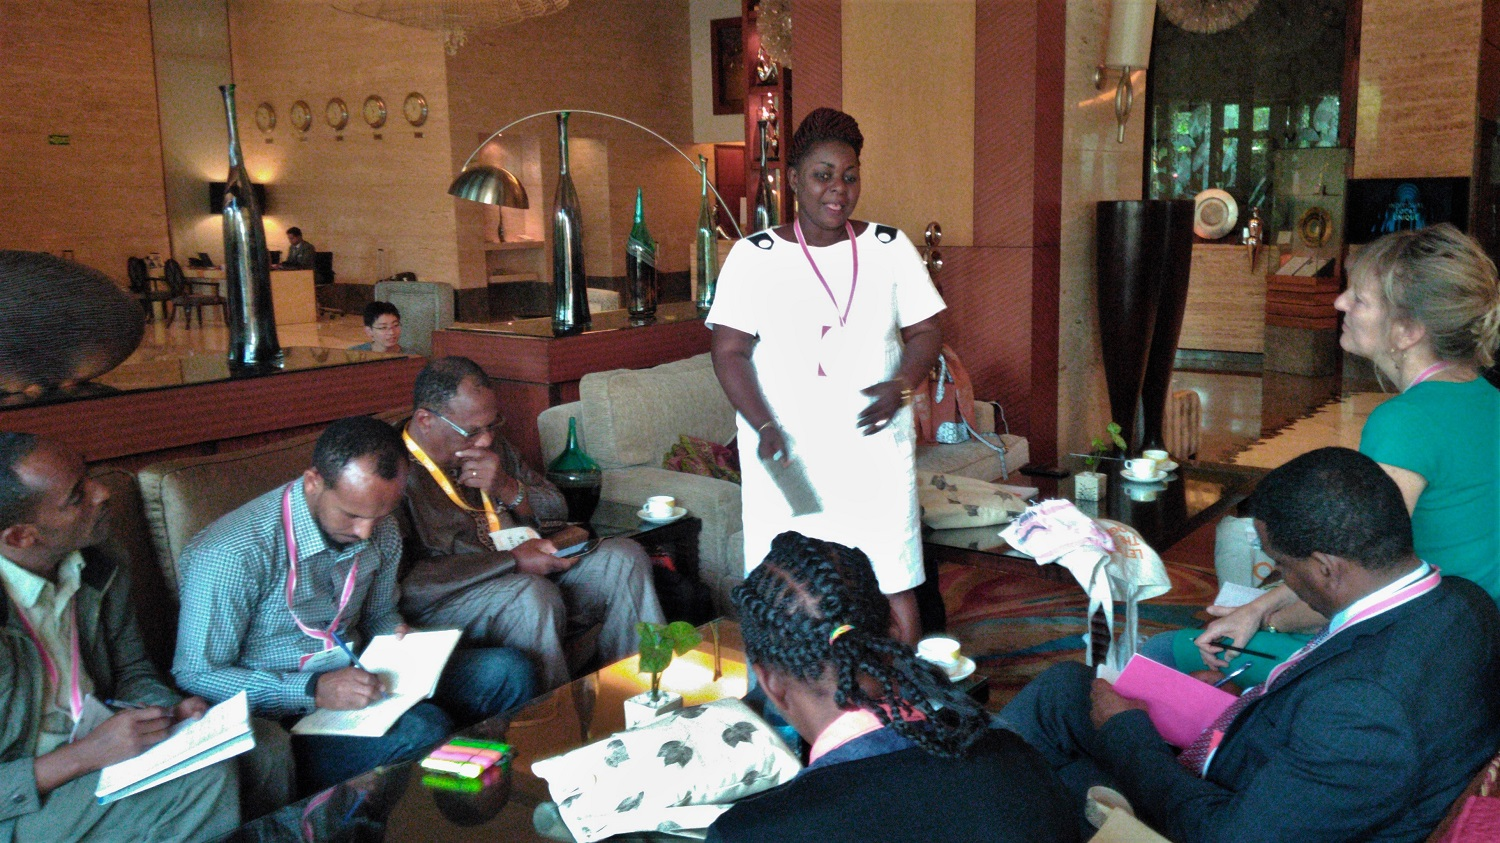 Project team members from Benin and Ethiopia sharing knowledge and discussing successes and challenges at the Organic Cotton Summit in Nagpur. Credit: PAN UK